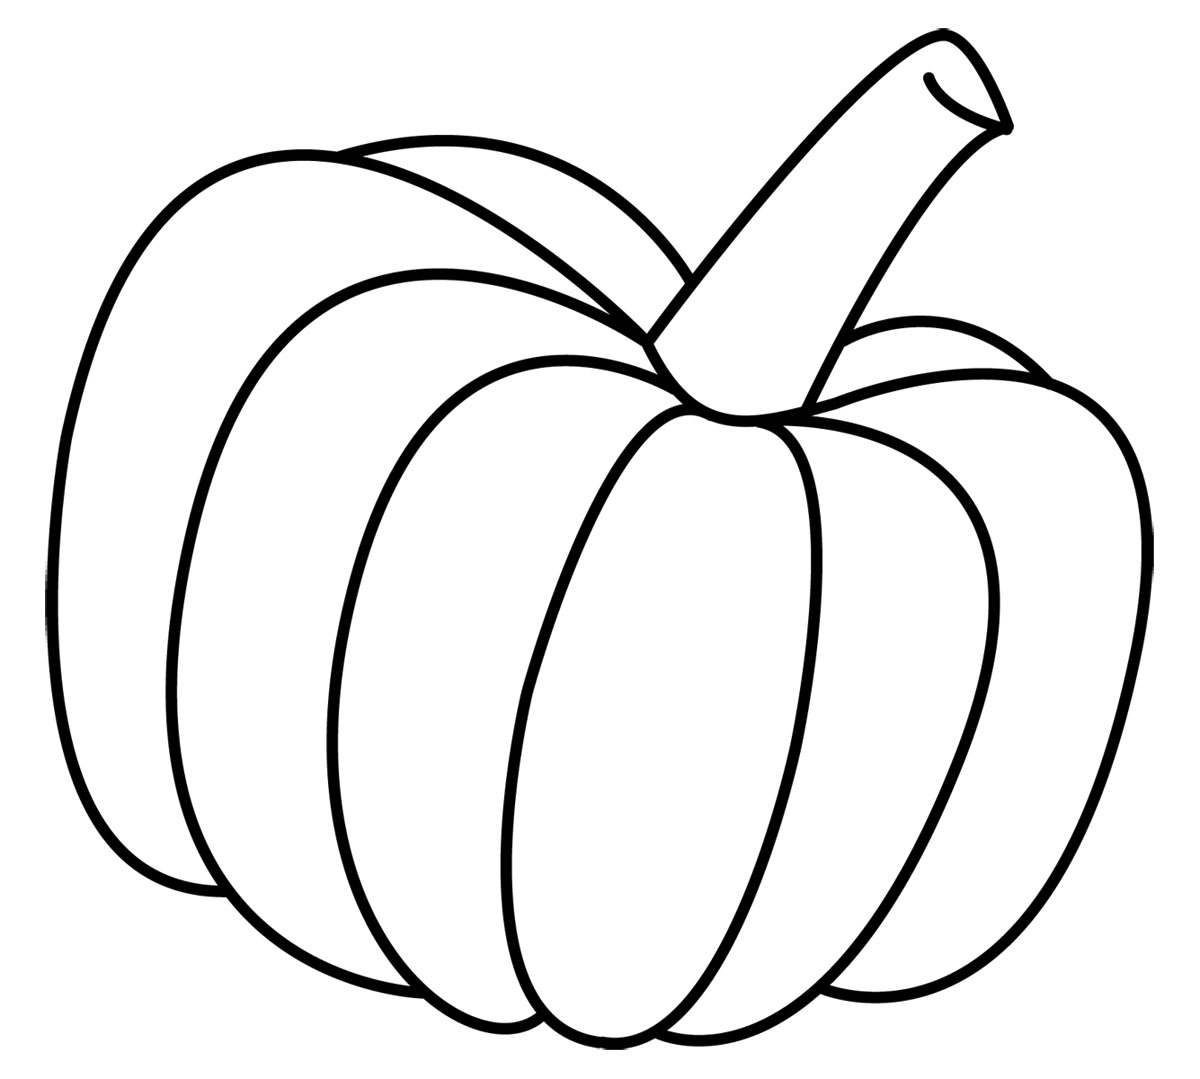 Free Printable Pumpkin Coloring Pages For Kids Free Printable Pumpkin Coloring Pages